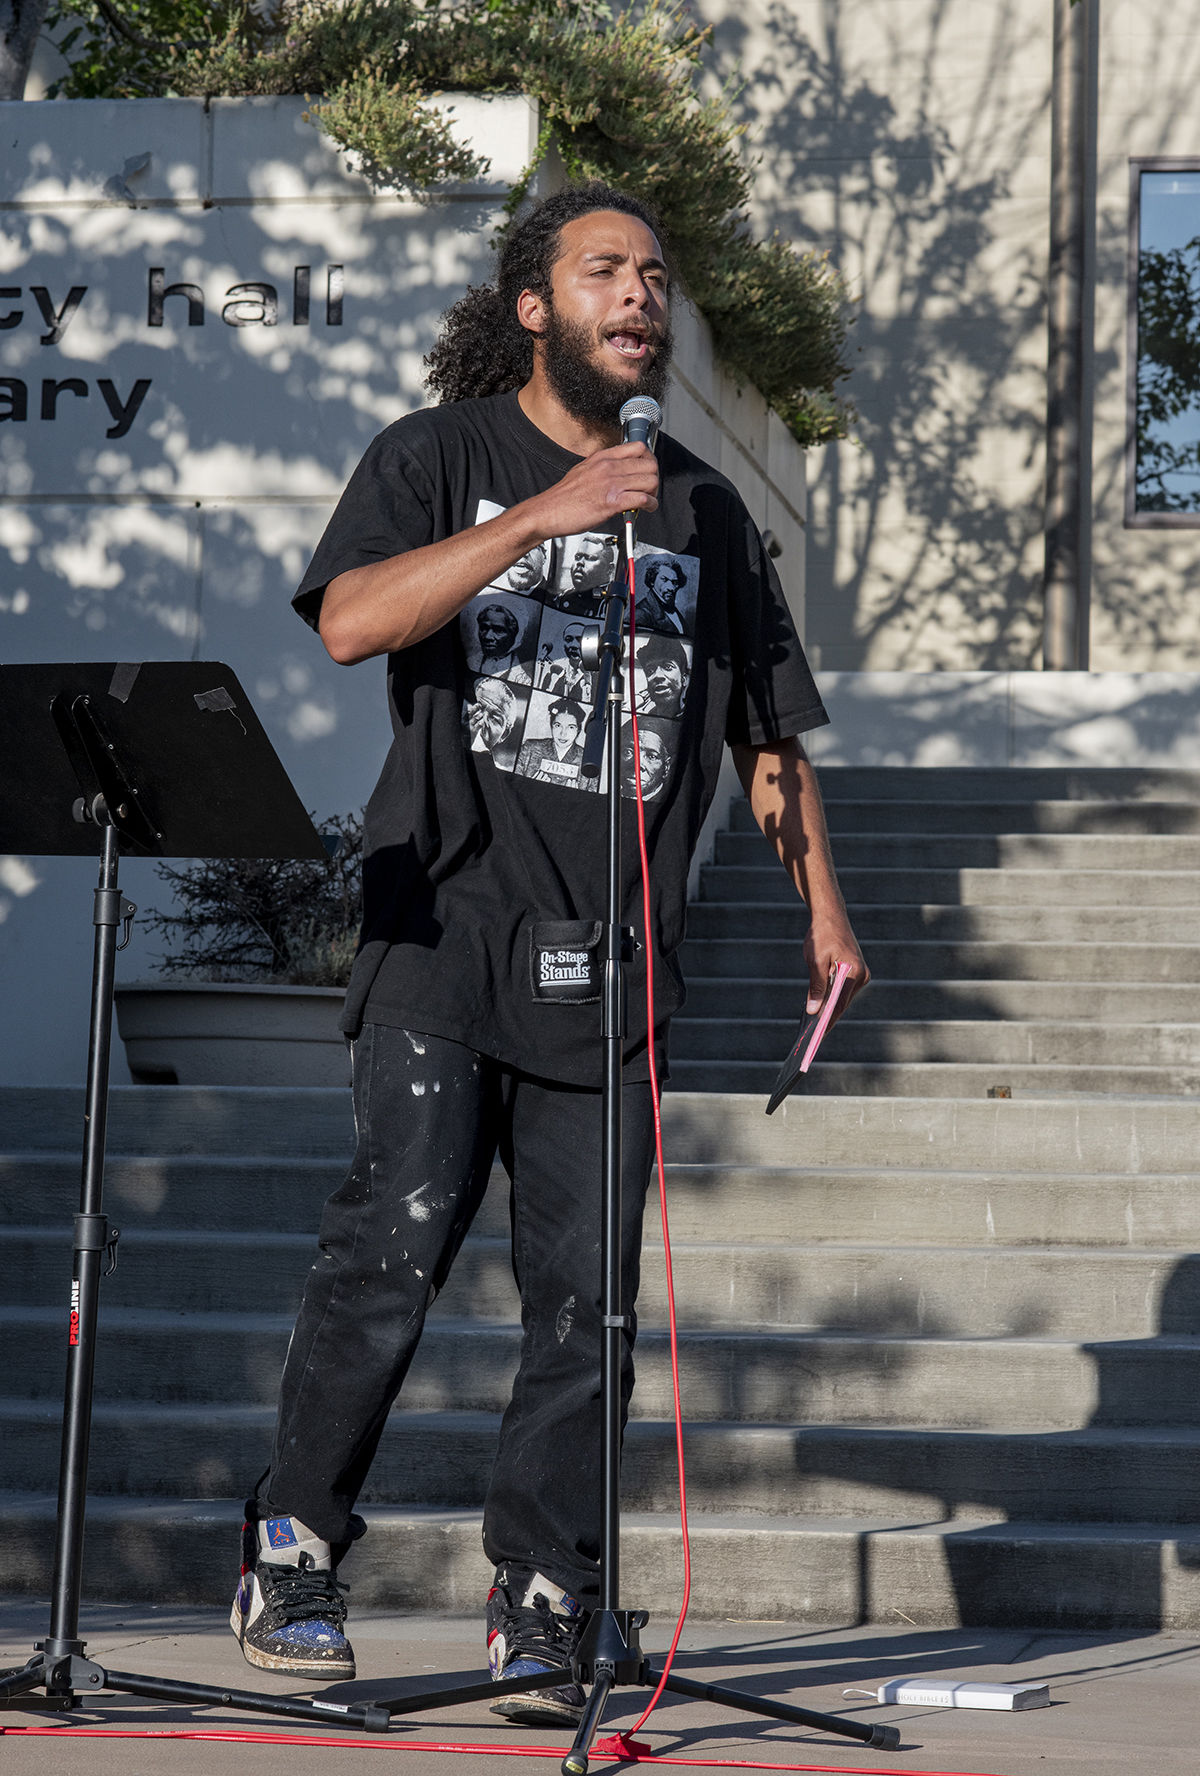 "About 250 people gathered at the Springfield, Oregon, library for what was billed as an All Lives Matter rally Friday at 7 p.m. About a dozen counter protesters also attended. The main speaker, Marcus Edwards, spoke for nearly an hour and said, ""It's a bunch of patriots getting together. I want to emphasize this is not against Black Lives Matter. We want to be inclusive of everyone. Because we feel Black Lives Matter has caused a lot of hatred. We feel they are a Marxist organization that doesn't represent Black Americans or the people at large. We feel that the mainstream media isn't giving us a fair voice, that any Trump supporter by the corporate controlled media is being demonized as racist, hateful, and so on. So we want to get together and say, hey, America is not as divided as they say it is. All power to all people. We agree Black Lives Matter. We also believe all lives matter."" The event was mostly peaceful, although a couple of minor scuffles broke out and one man was taken into custody by the Springfield police. By 9:30 p.m. both the protesters and the counter protesters dispersed. Photo by Dan Morrison"